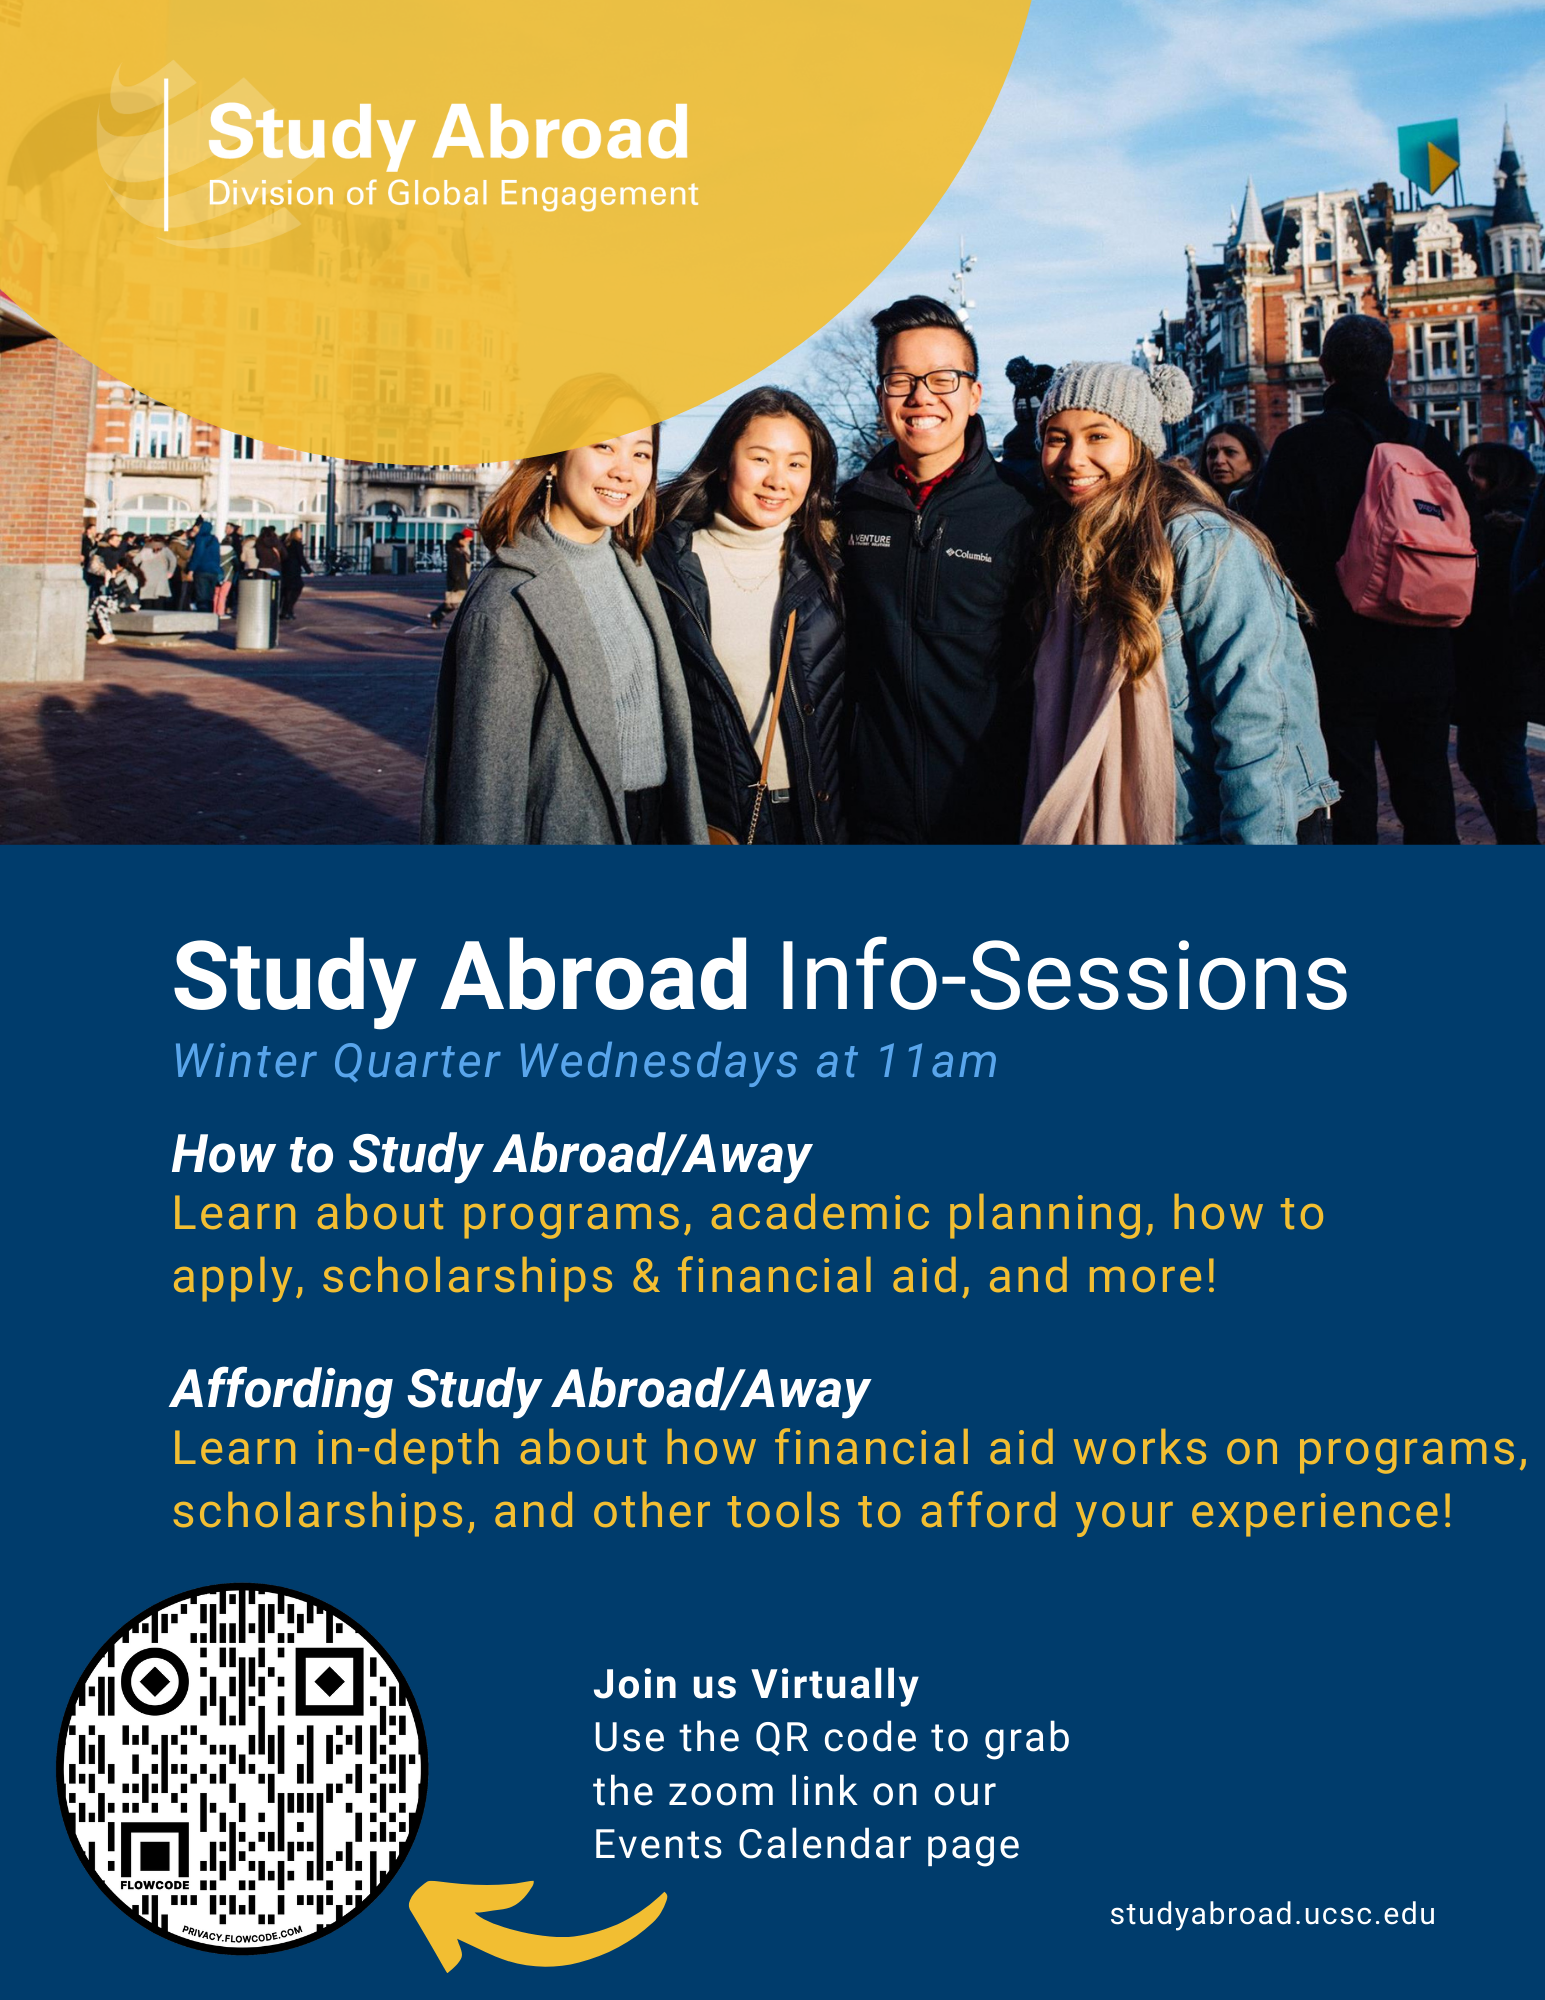 Flyer for Study Abroad Info Sessions